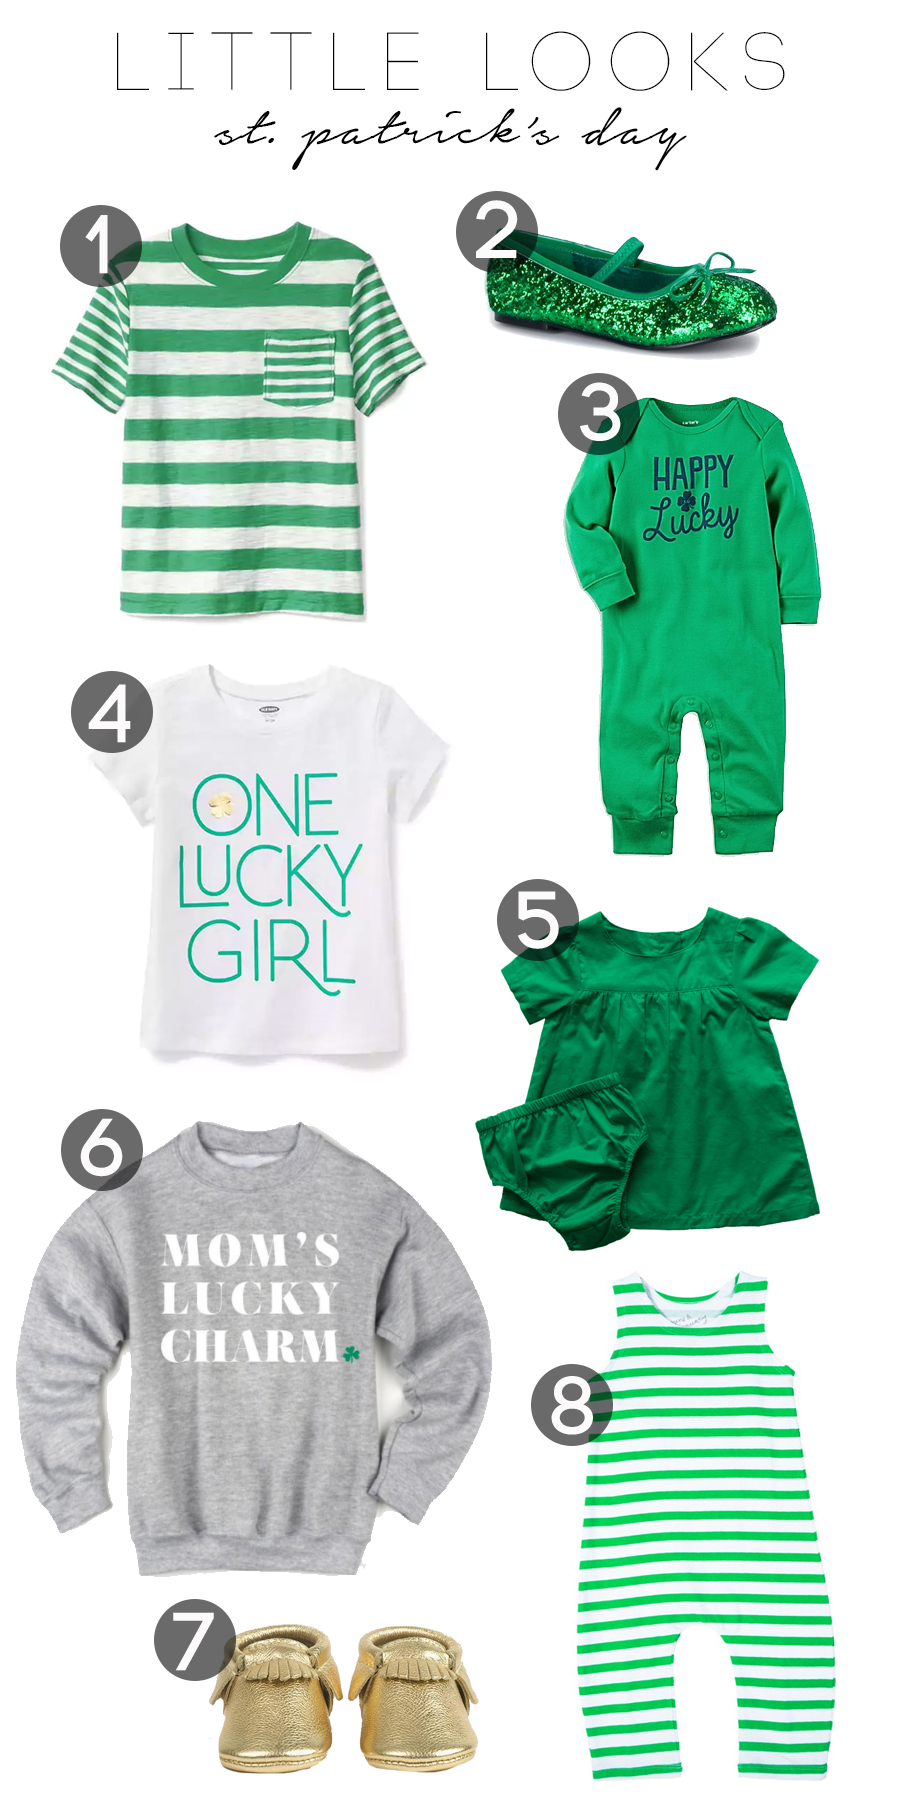 bc30374c2 Little looks: St. Patrick's Day 2017 | Tomorrow's To Dos